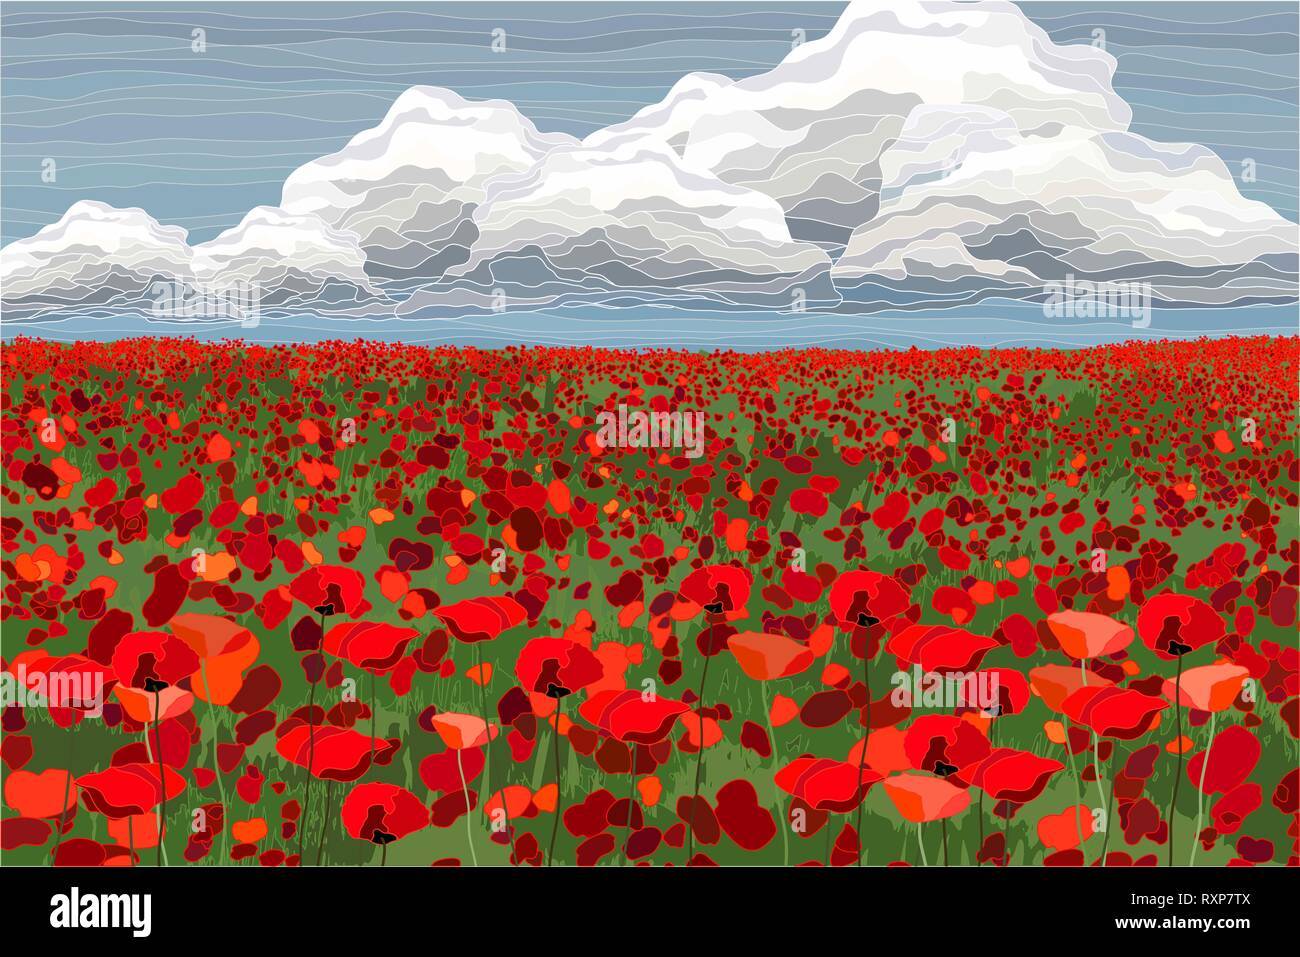 Bright poppy field with clouds and blue sky vector illustration - Stock Vector